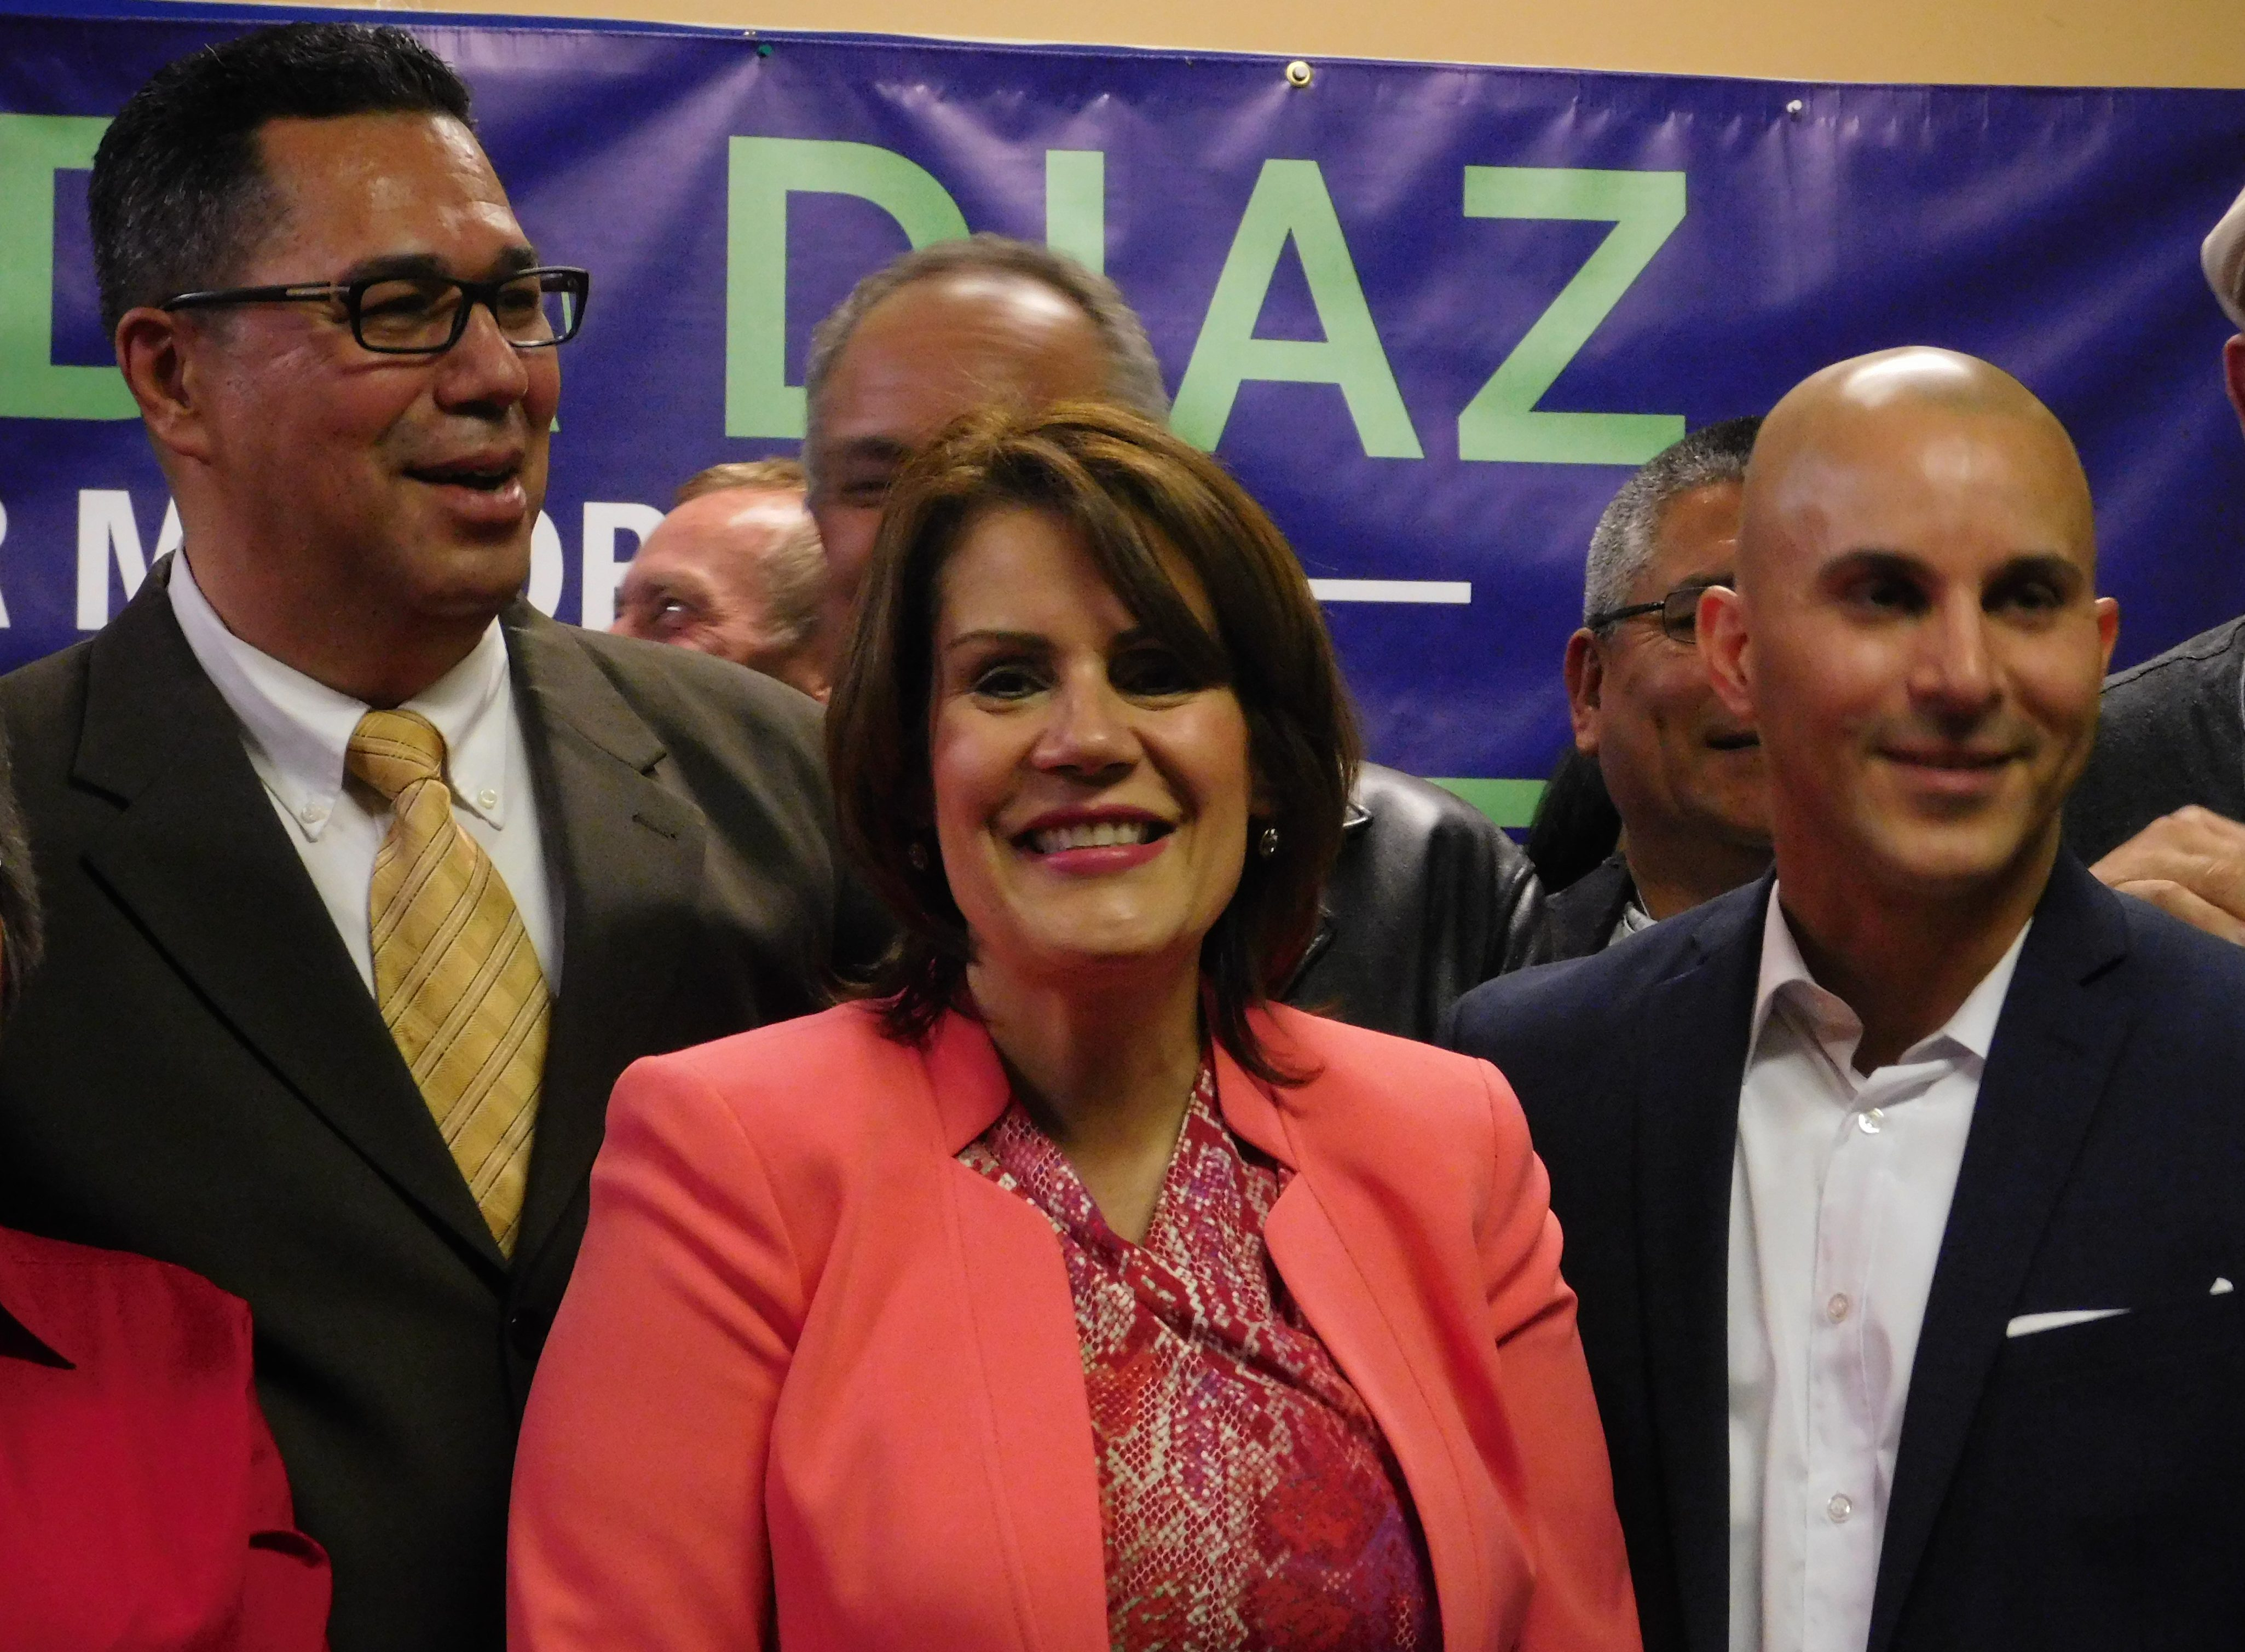 Mayor Diaz is pursuing her third term this November.